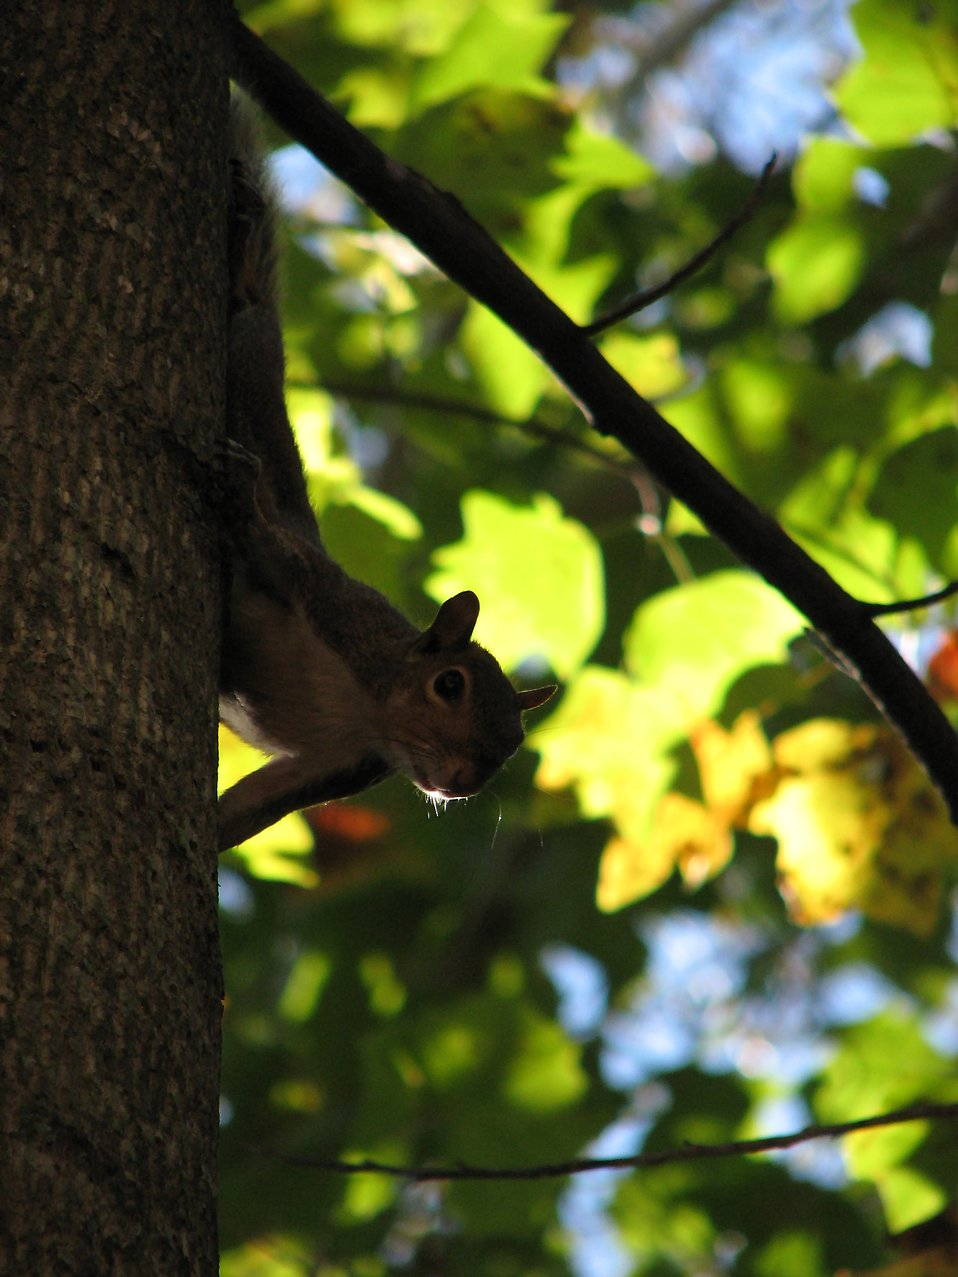 Squirrel in tree leaves : Free Stock Photo